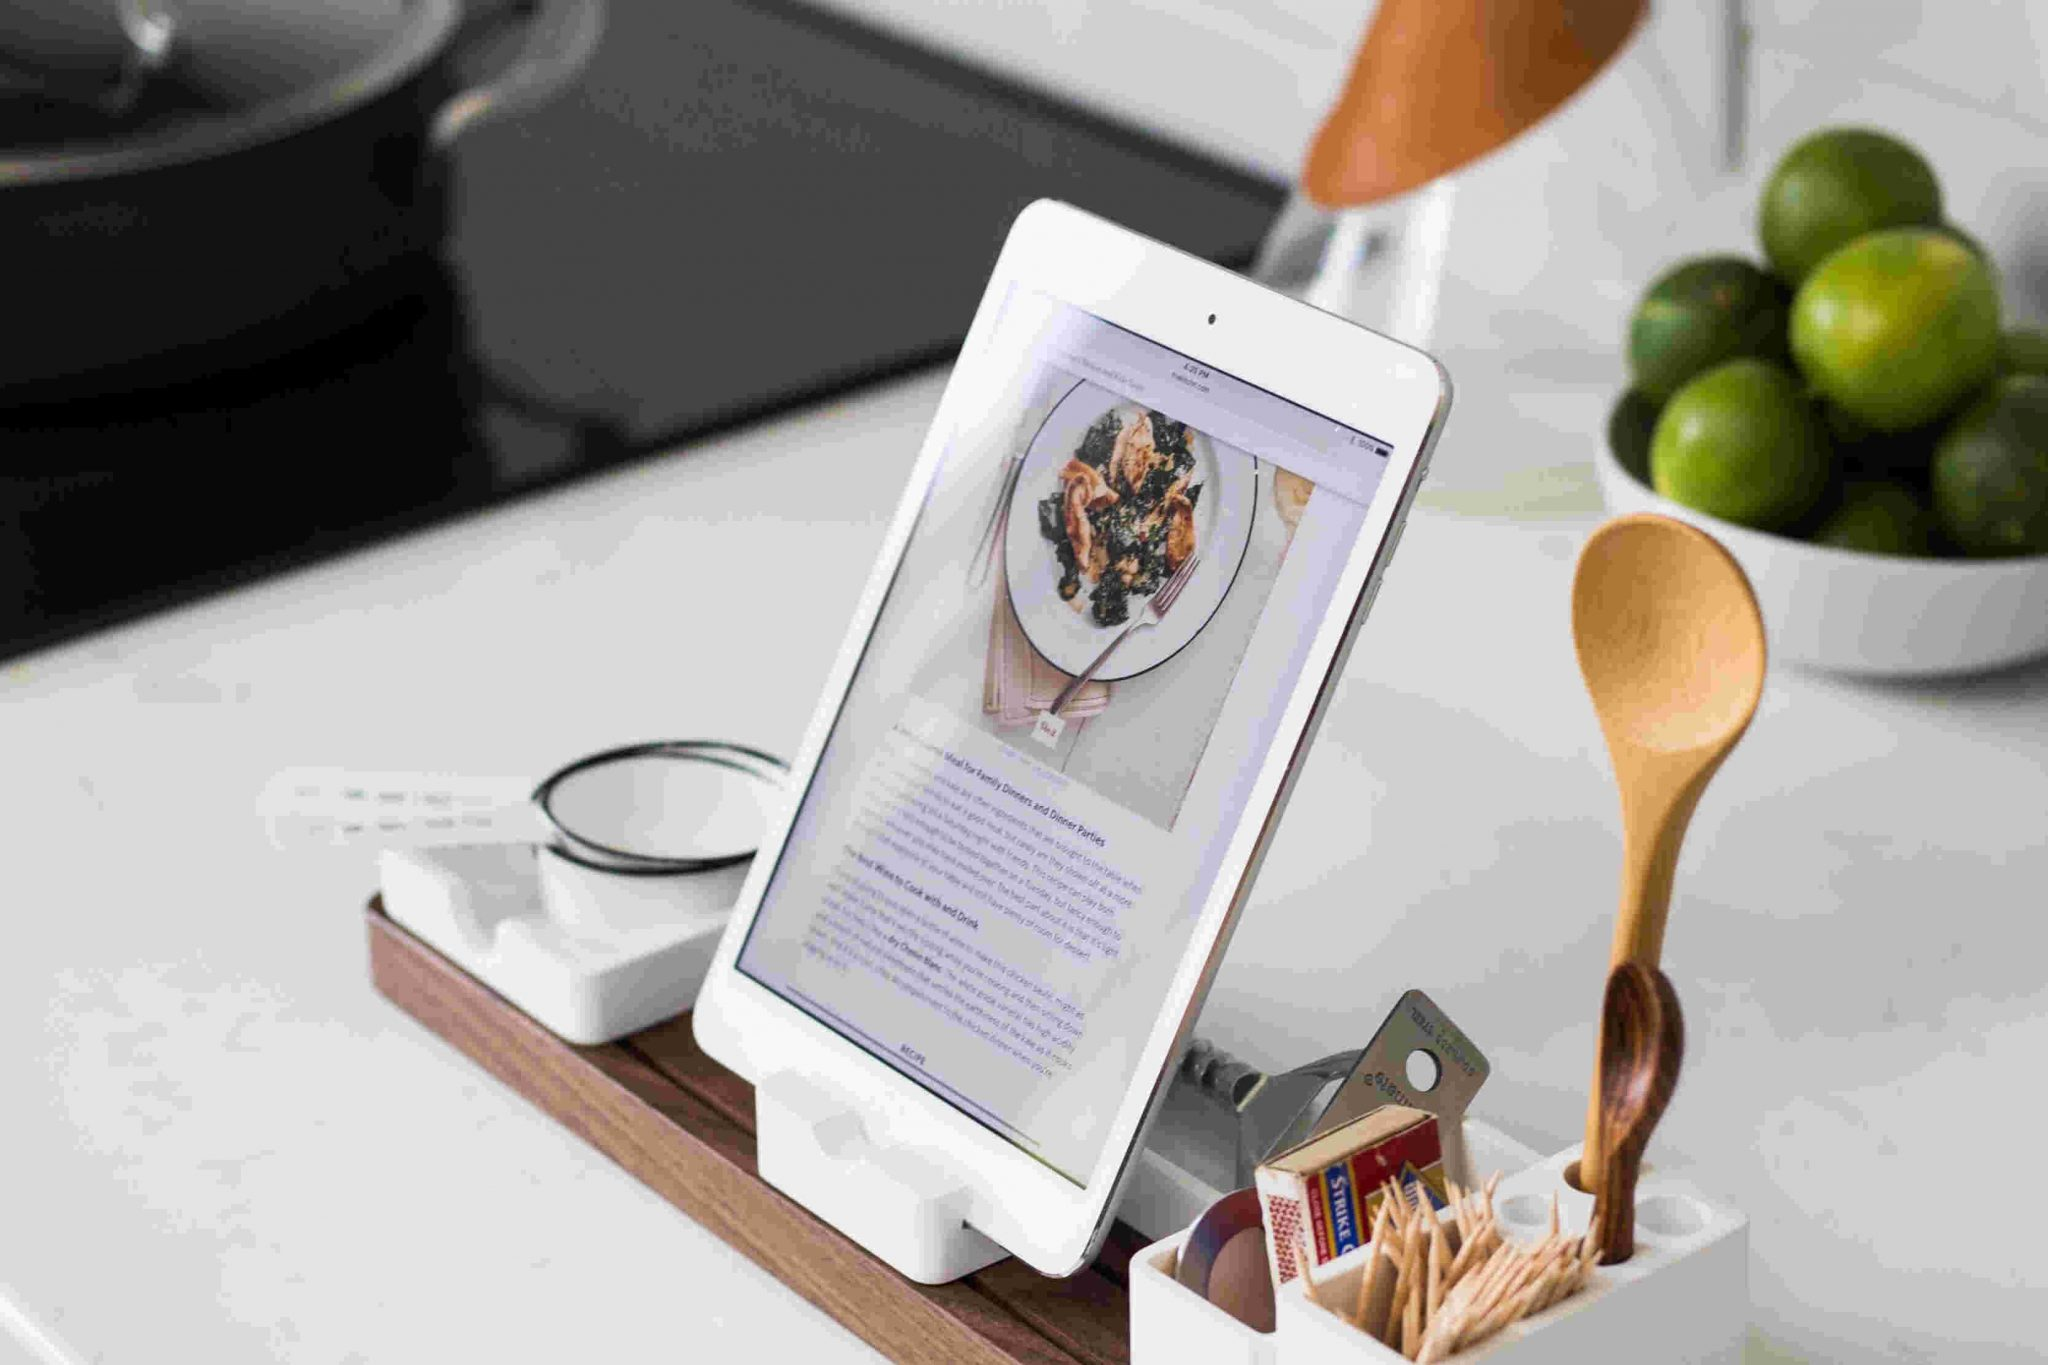 kitchen counter with a tablet showing a recipe